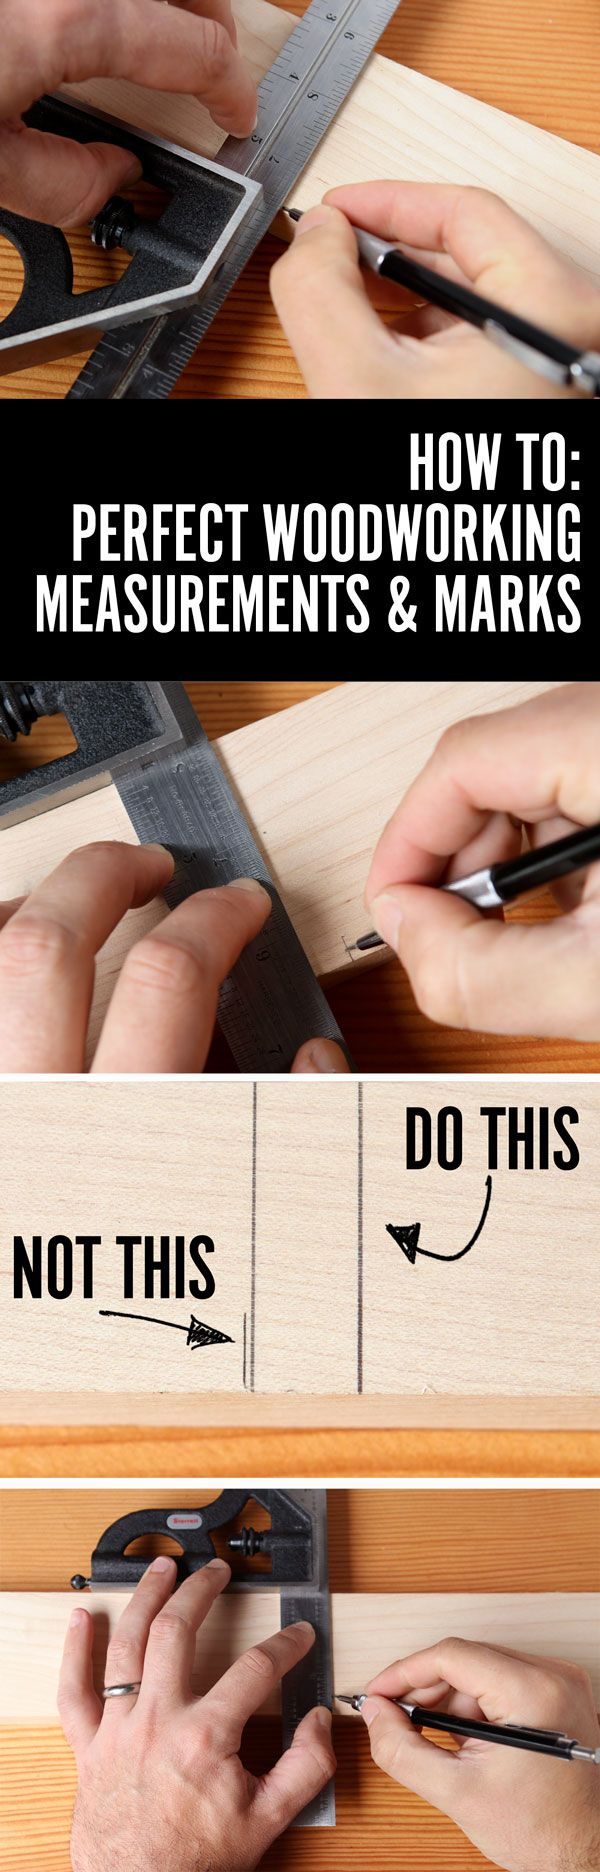 The 1-Second Trick to More Accurate Measuring and Marking for Your Woodworking Projects | Man Made DIY | Crafts for Men | Keywords: how-to, diy, woodworking, wood